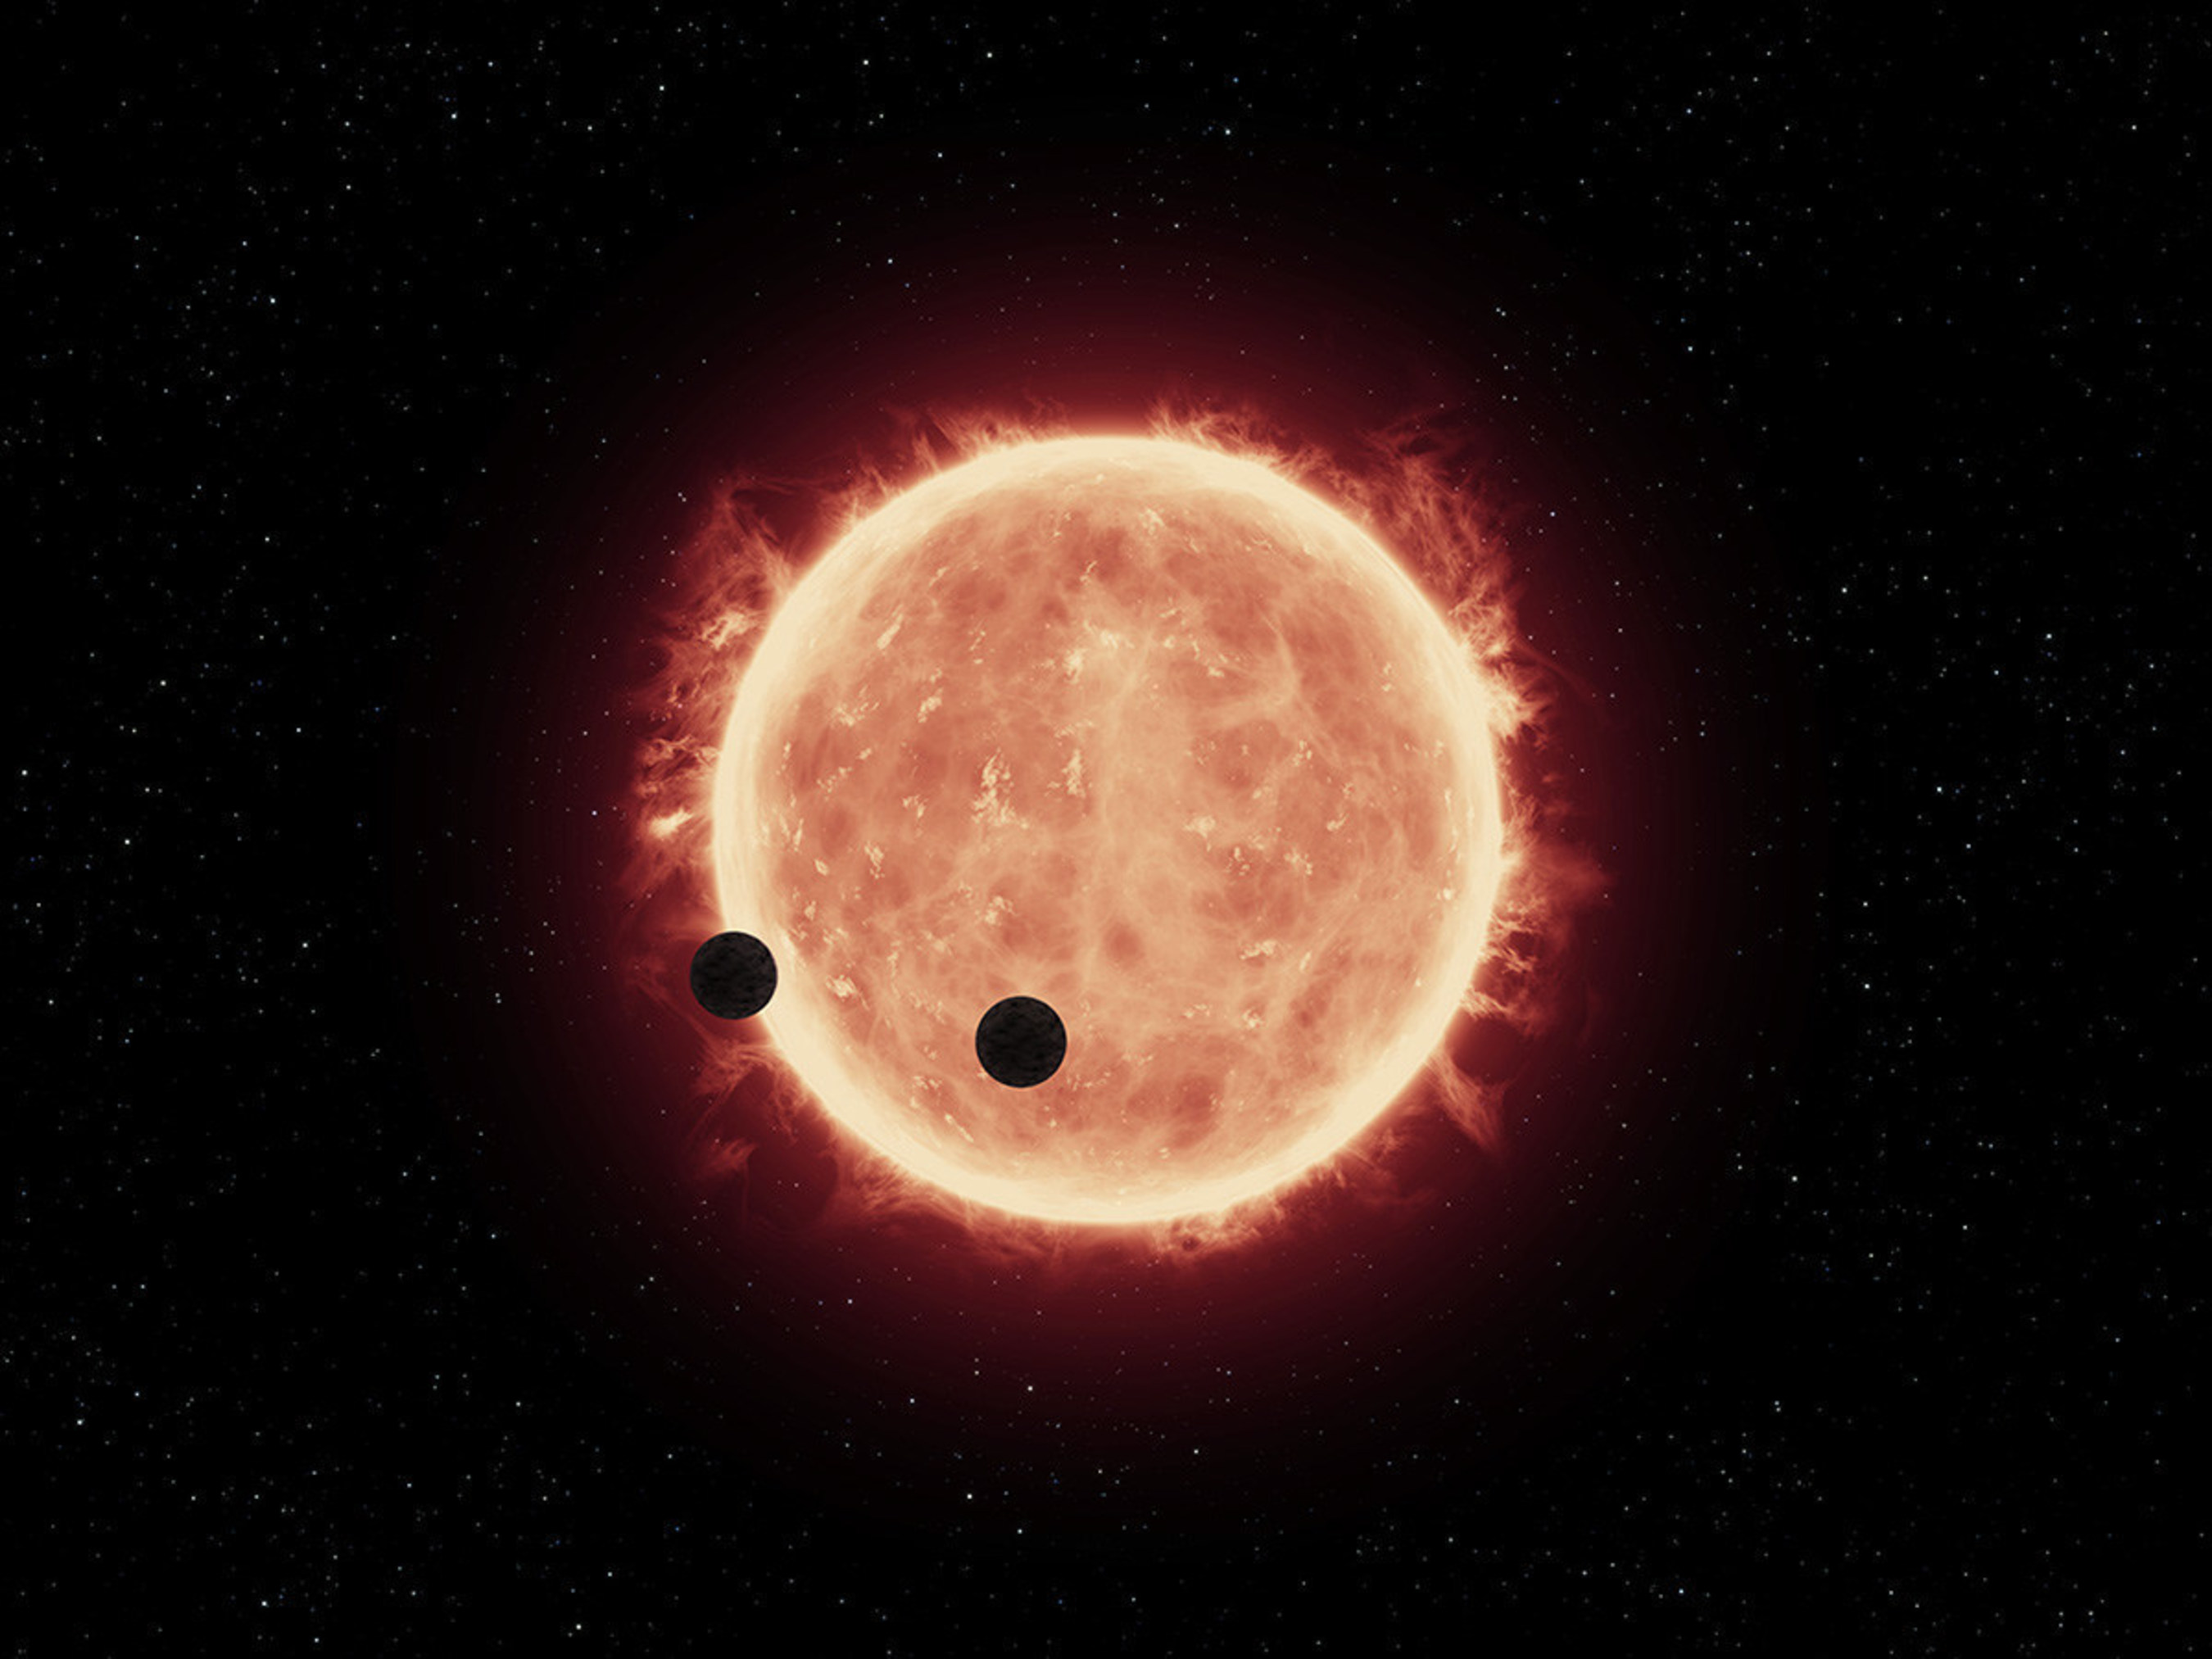 This artist's illustration shows two Earth-sized planets, TRAPPIST-1b and TRAPPIST-1c, passing in front of their parent red dwarf star, which is much smaller and cooler than our sun. NASA's Hubble Space Telescope looked for signs of atmospheres around these planets.